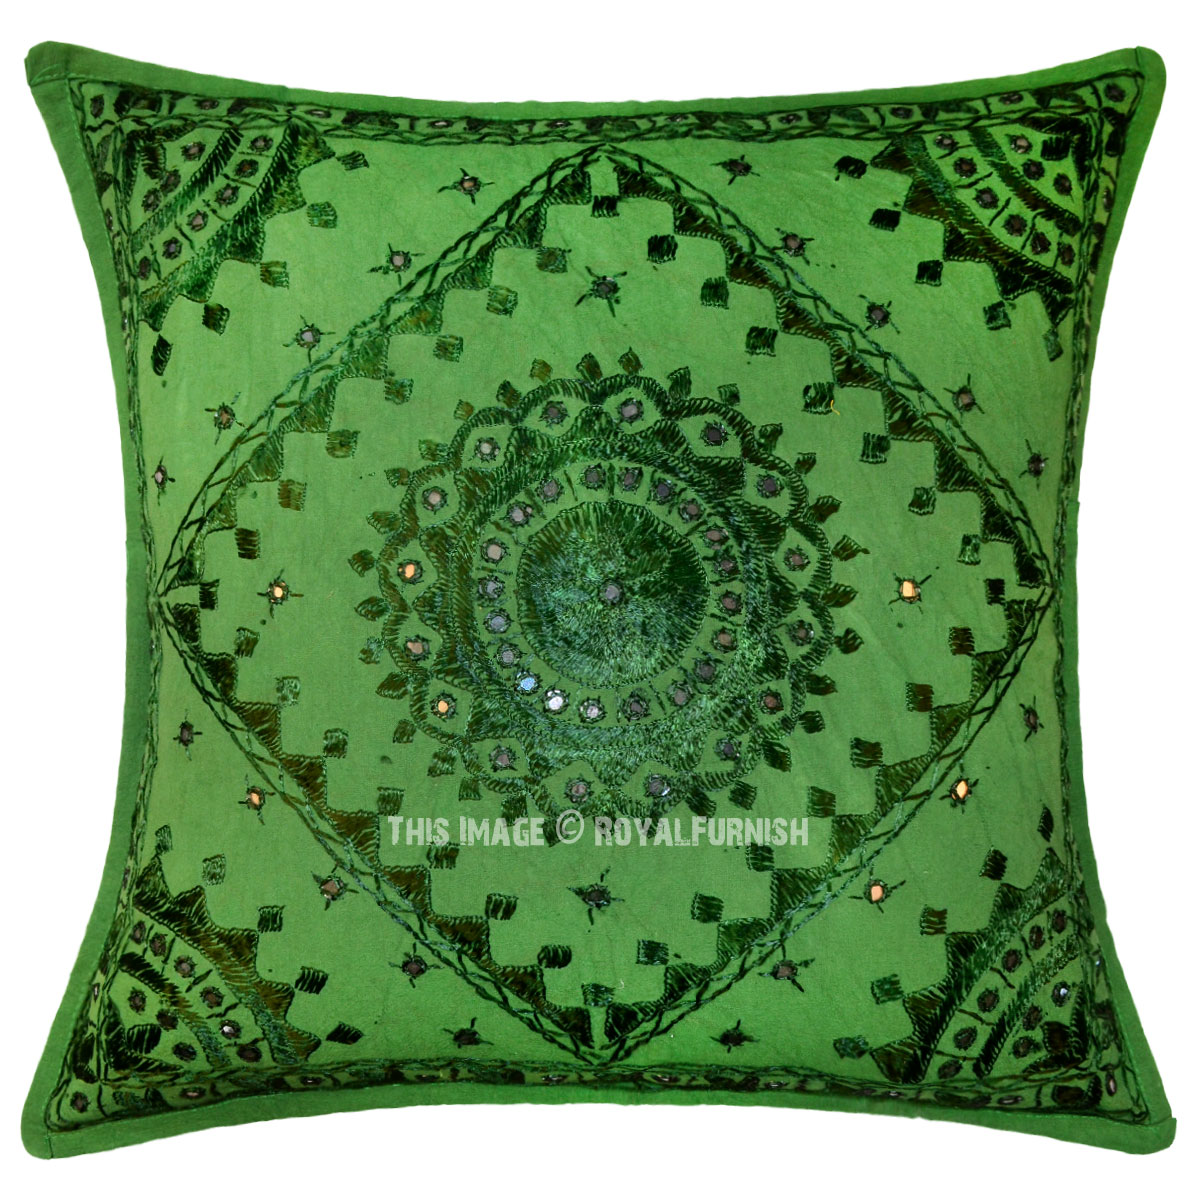 Green Mirror Embroidered Cotton Sofa Indian Throw Pillow - RoyalFurnish.com